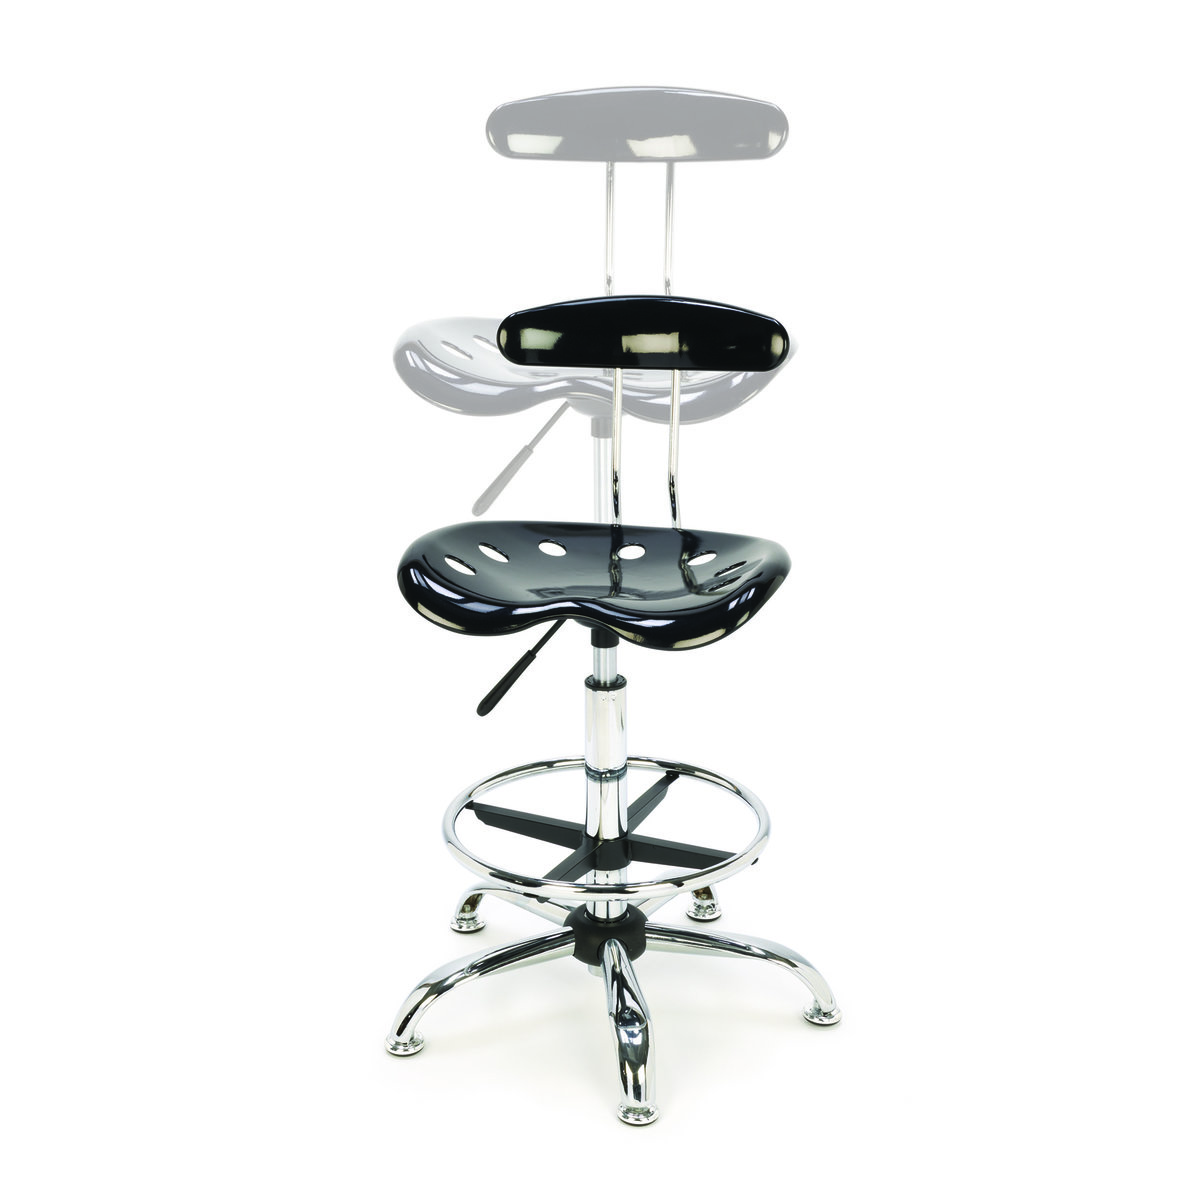 Woodriver Tractor Seat Style Shop Stool With Adjustable Height